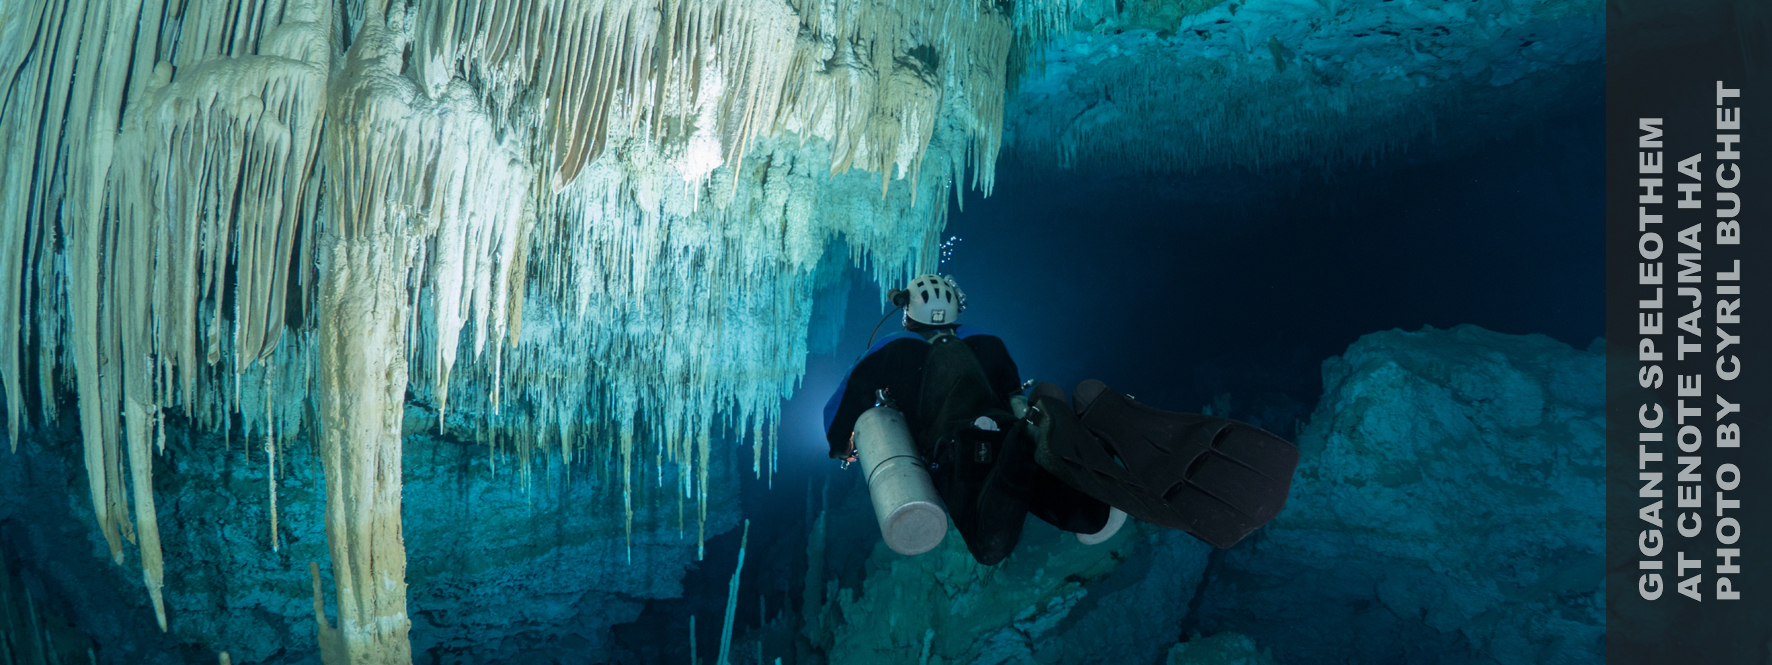 Under the Jungle, Cave Guide Mexico, Cenote Tajma Ha, Cenote Taj Mahal, Cyril Buchet Photography